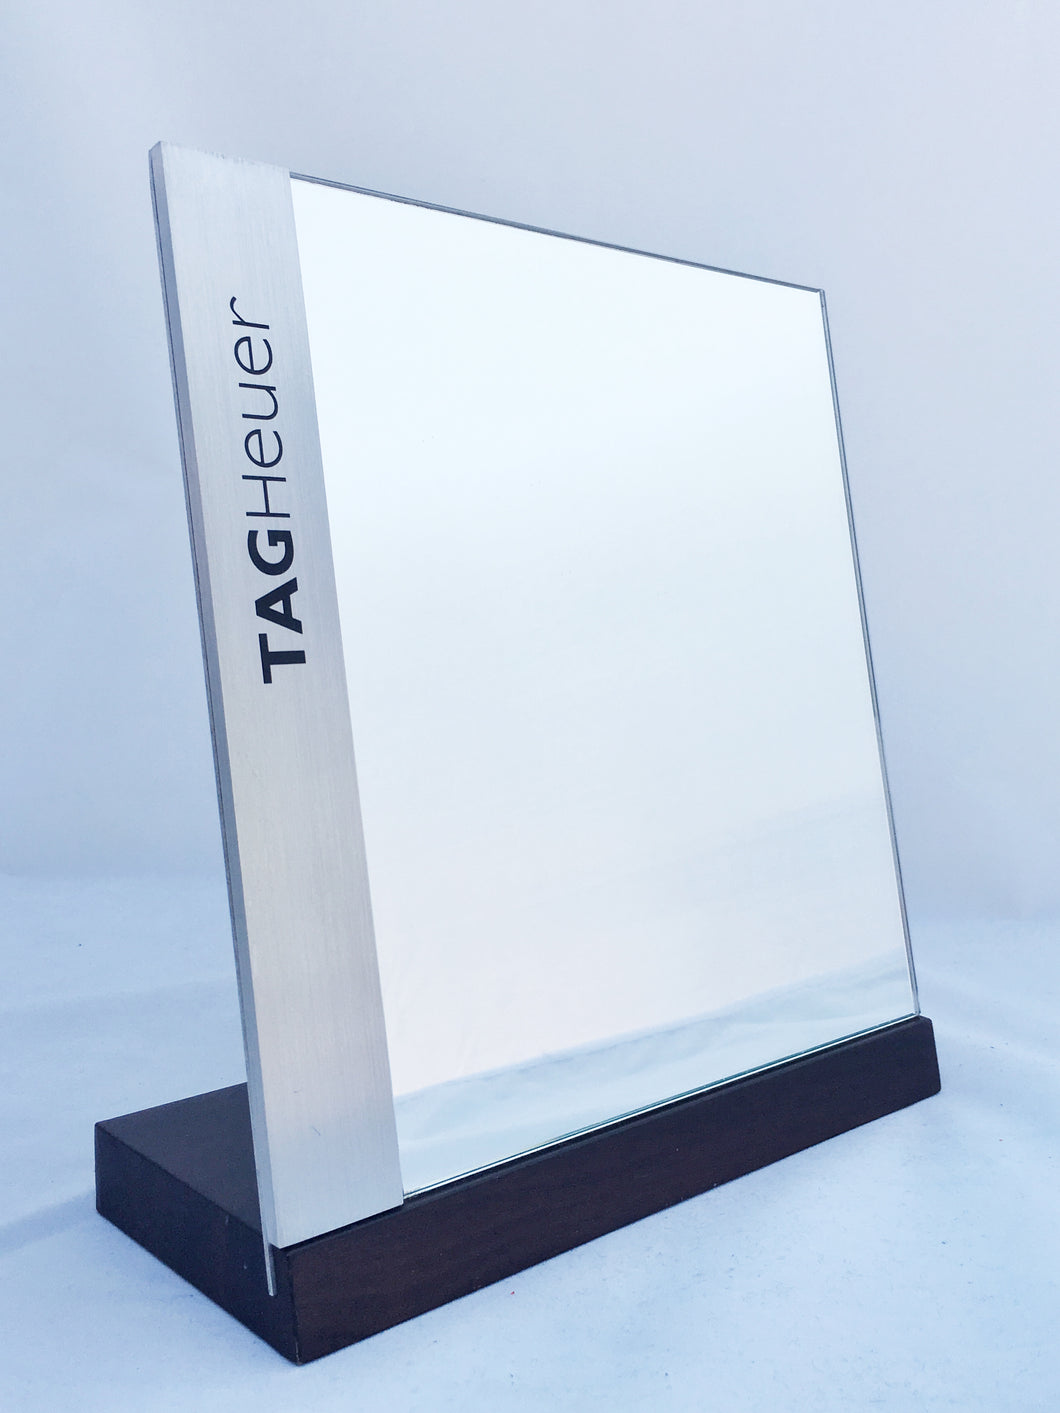 Tag Heuer mirror